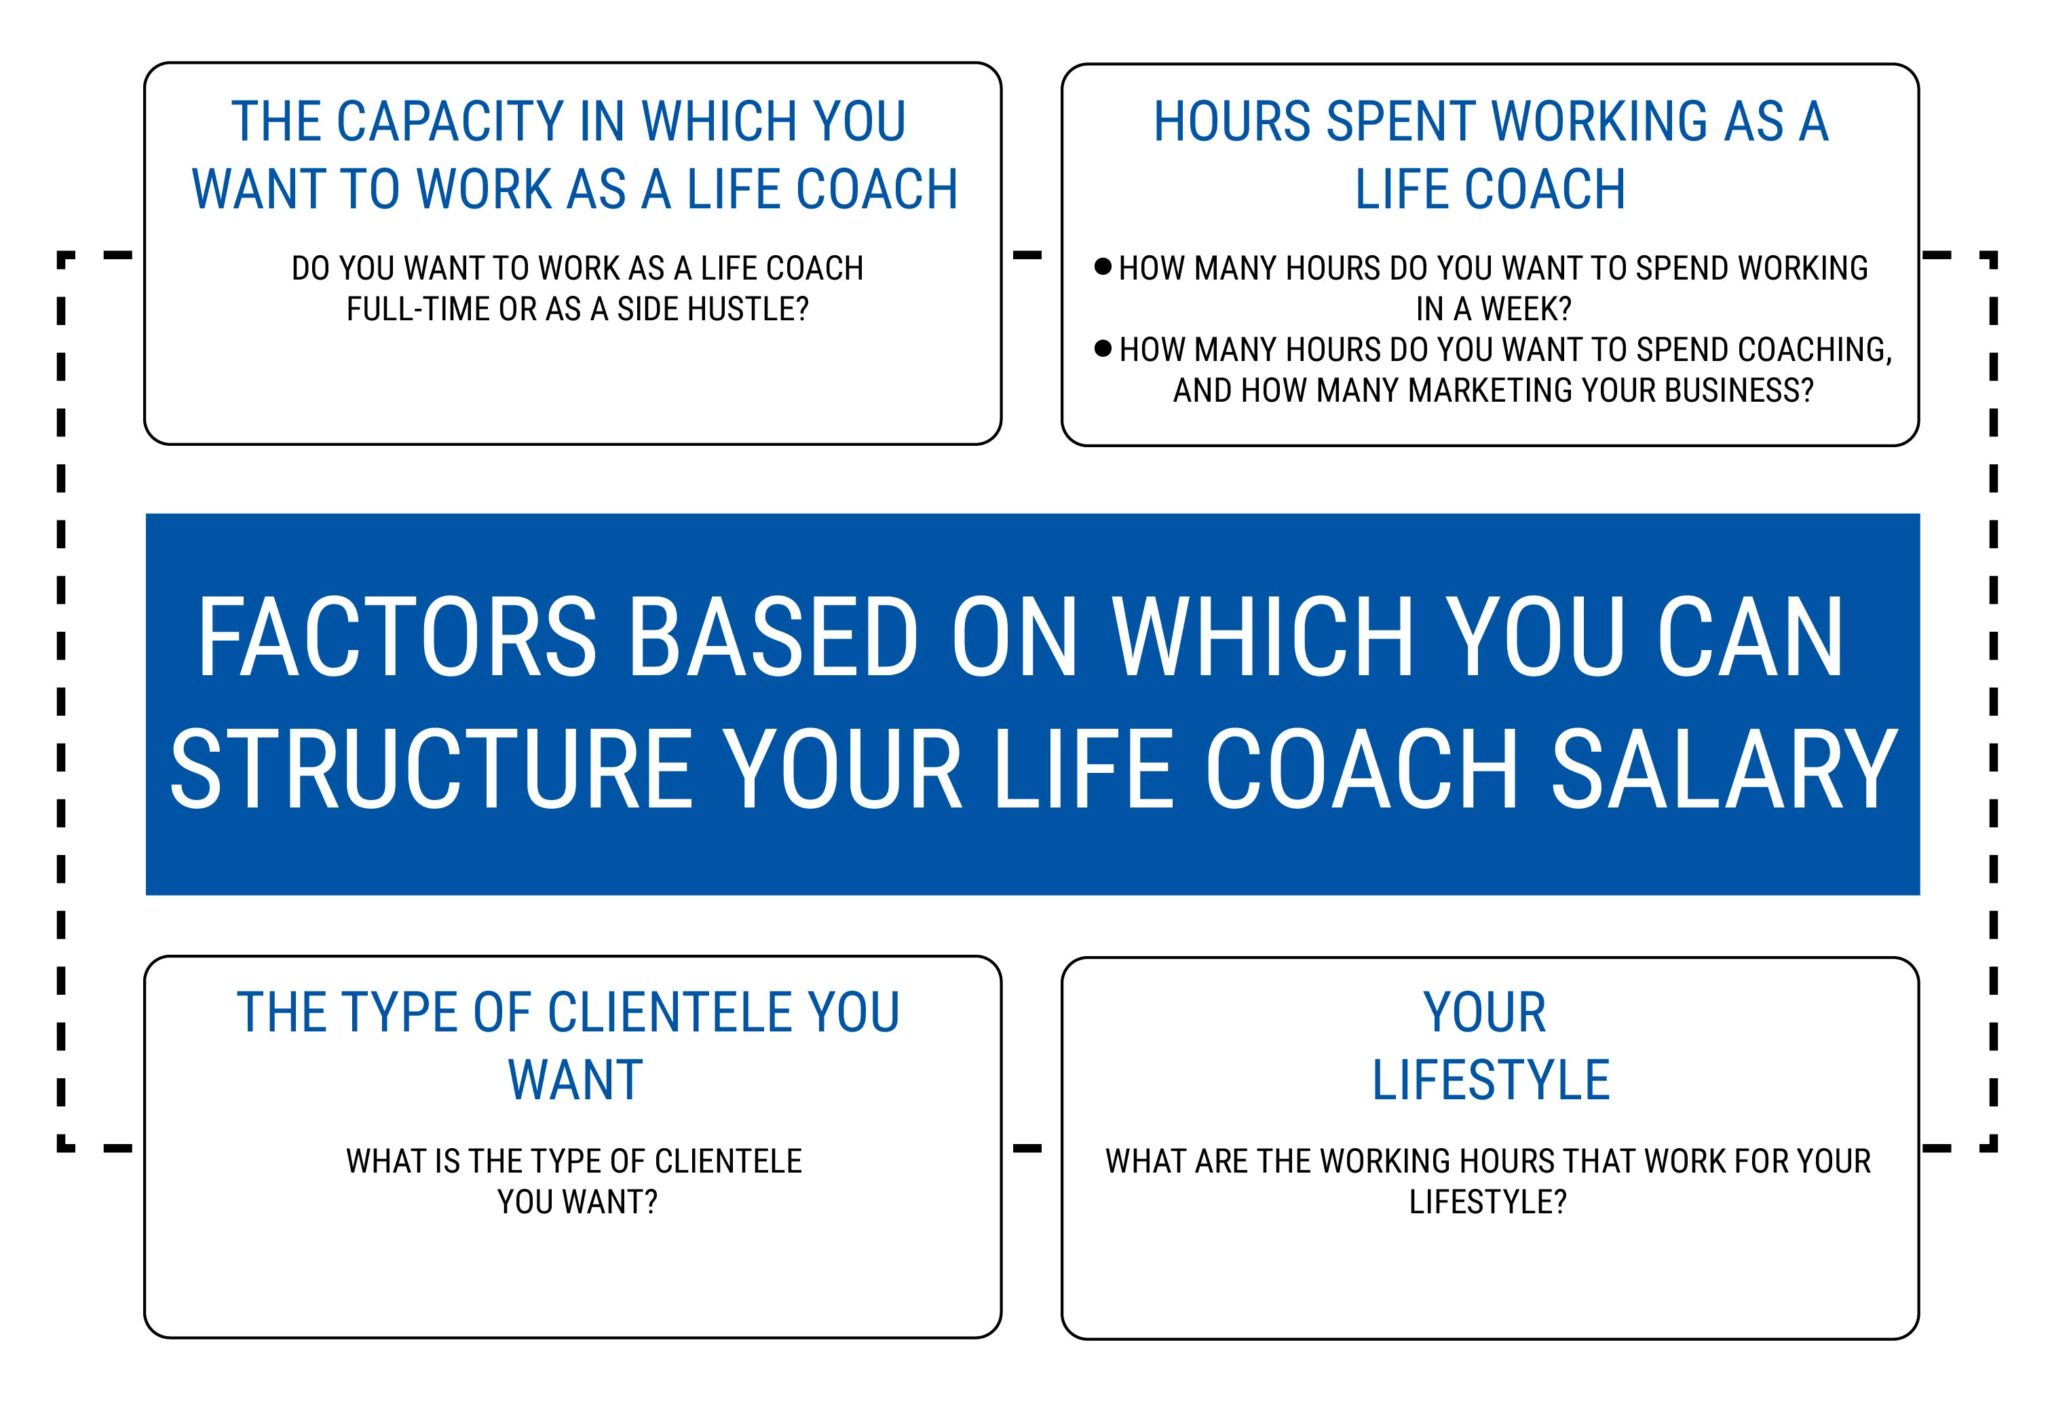 FACTORS BASED ON WHICH YOU CAN STRUCTURE YOUR LIFE COACH SALARY